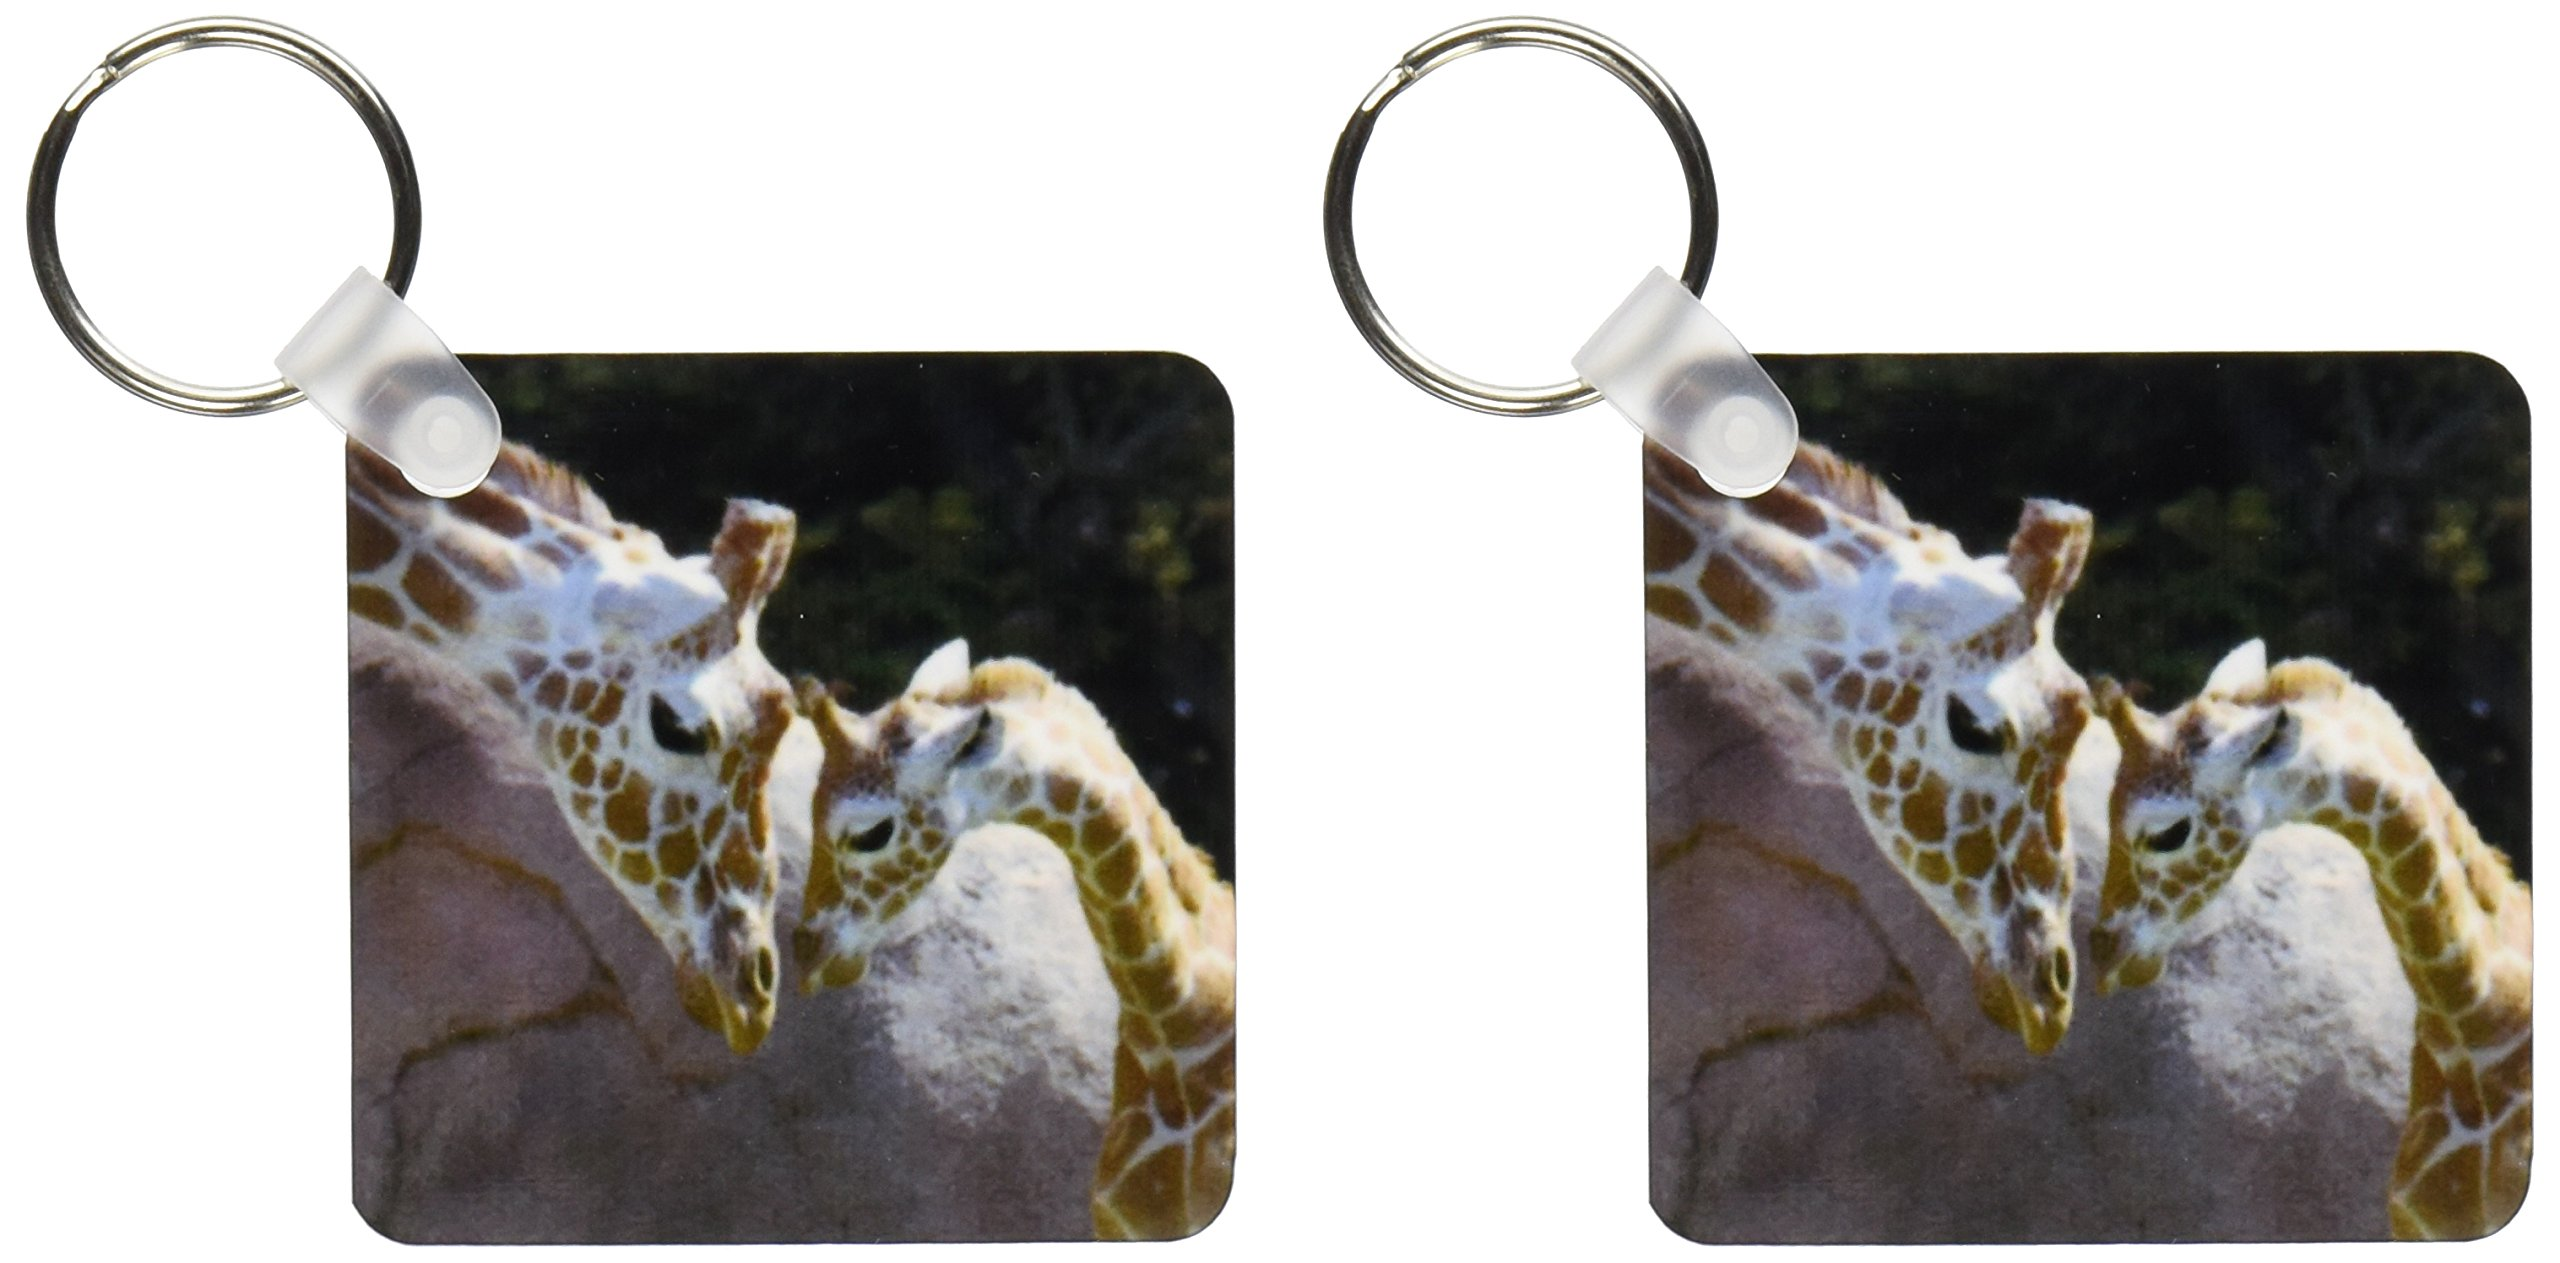 kc_96857 Danita Delimont - Giraffes - Mother and baby giraffe, San Francisco Zoo - US48 TAU0001 - Tananarive Aubert - Key Chains